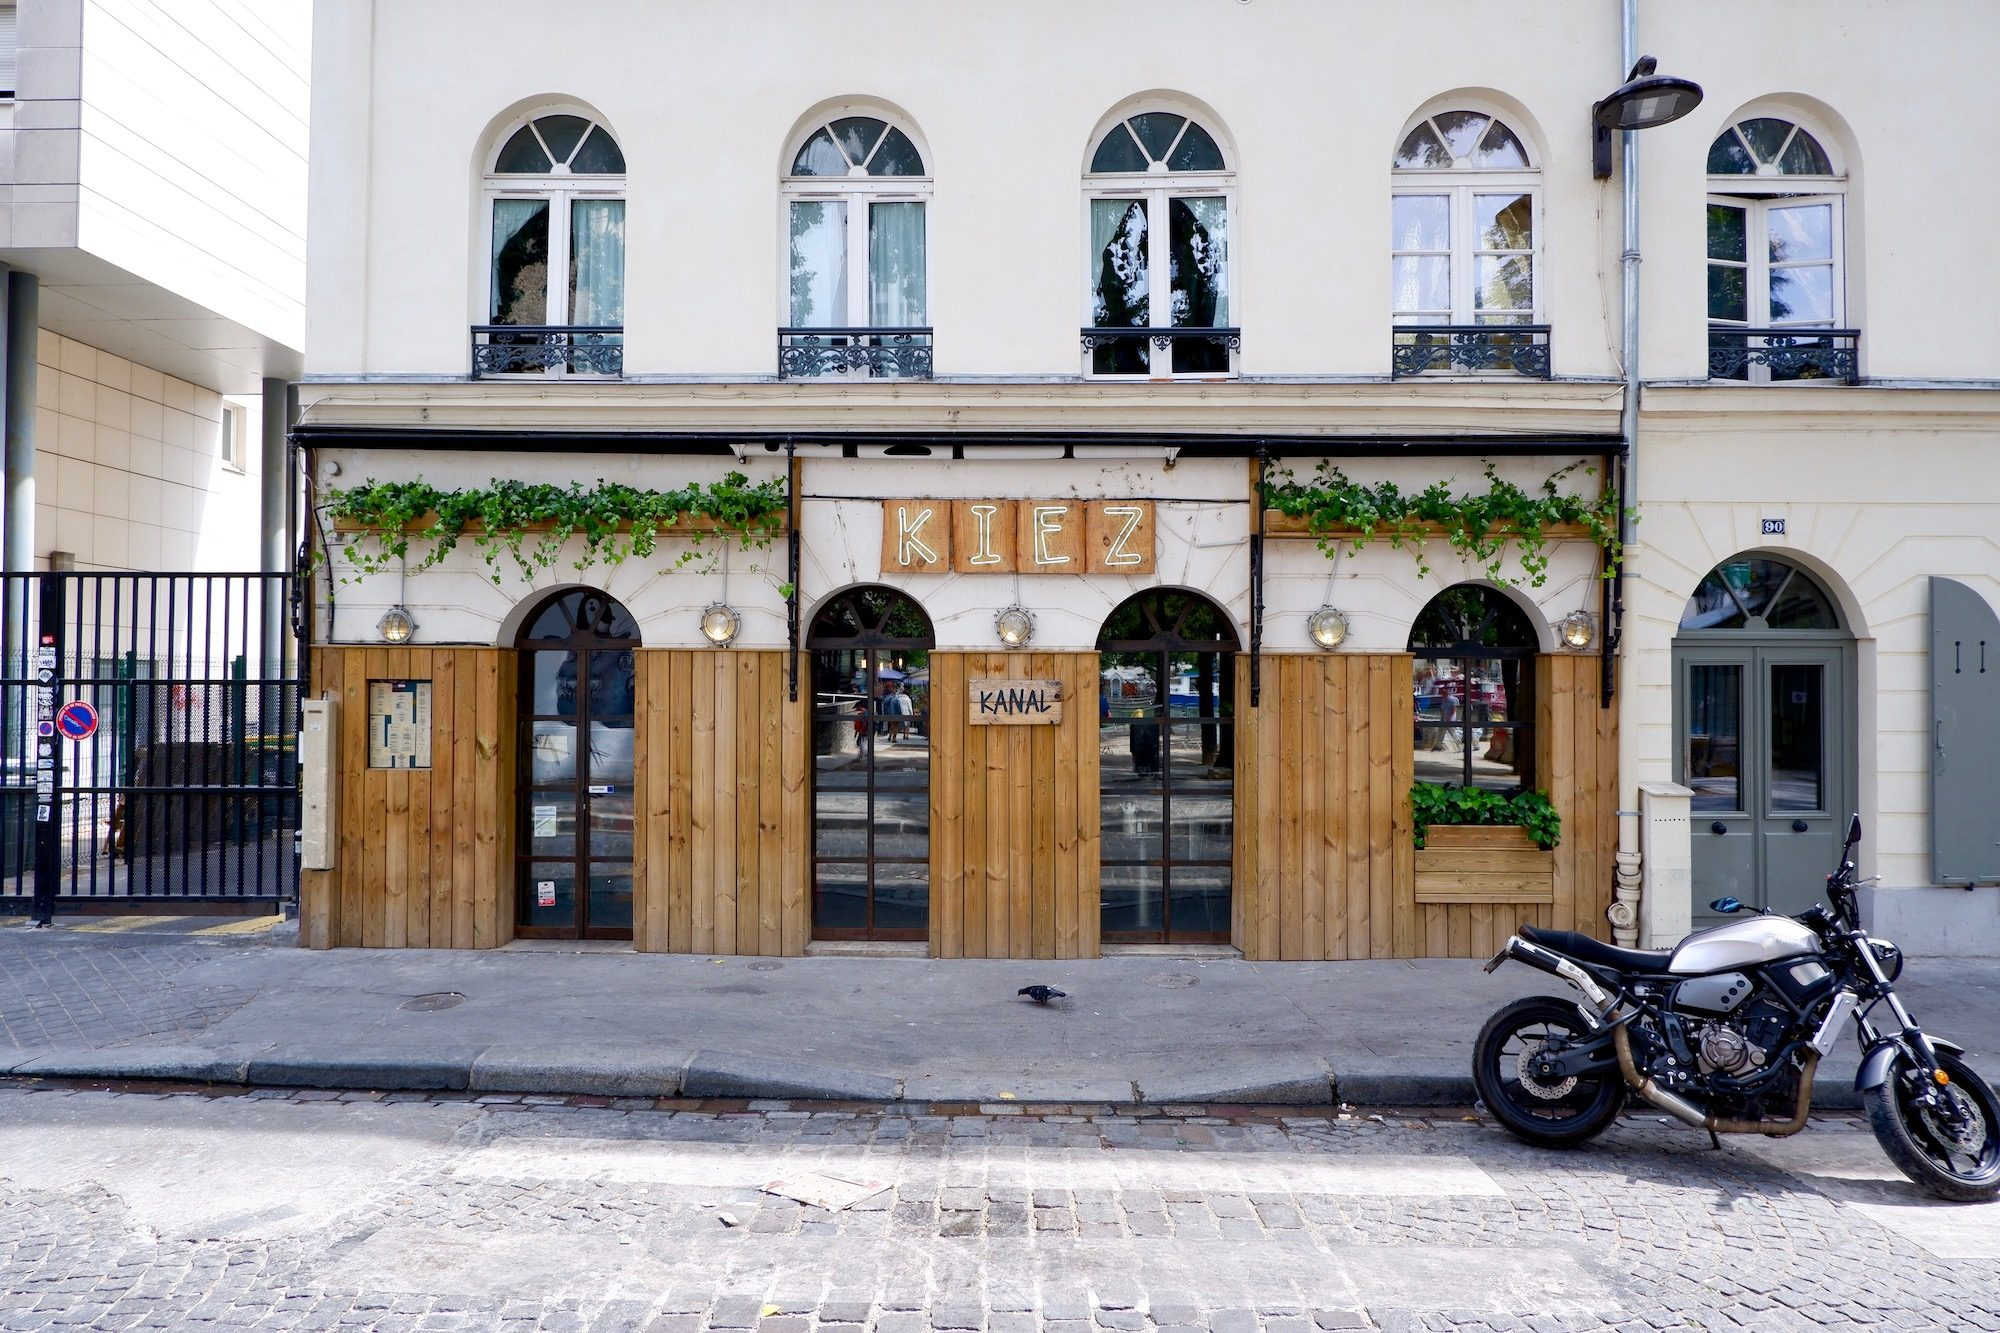 Kiez Kanal, another local favorite hangout for drinks and food on the Paris canals.